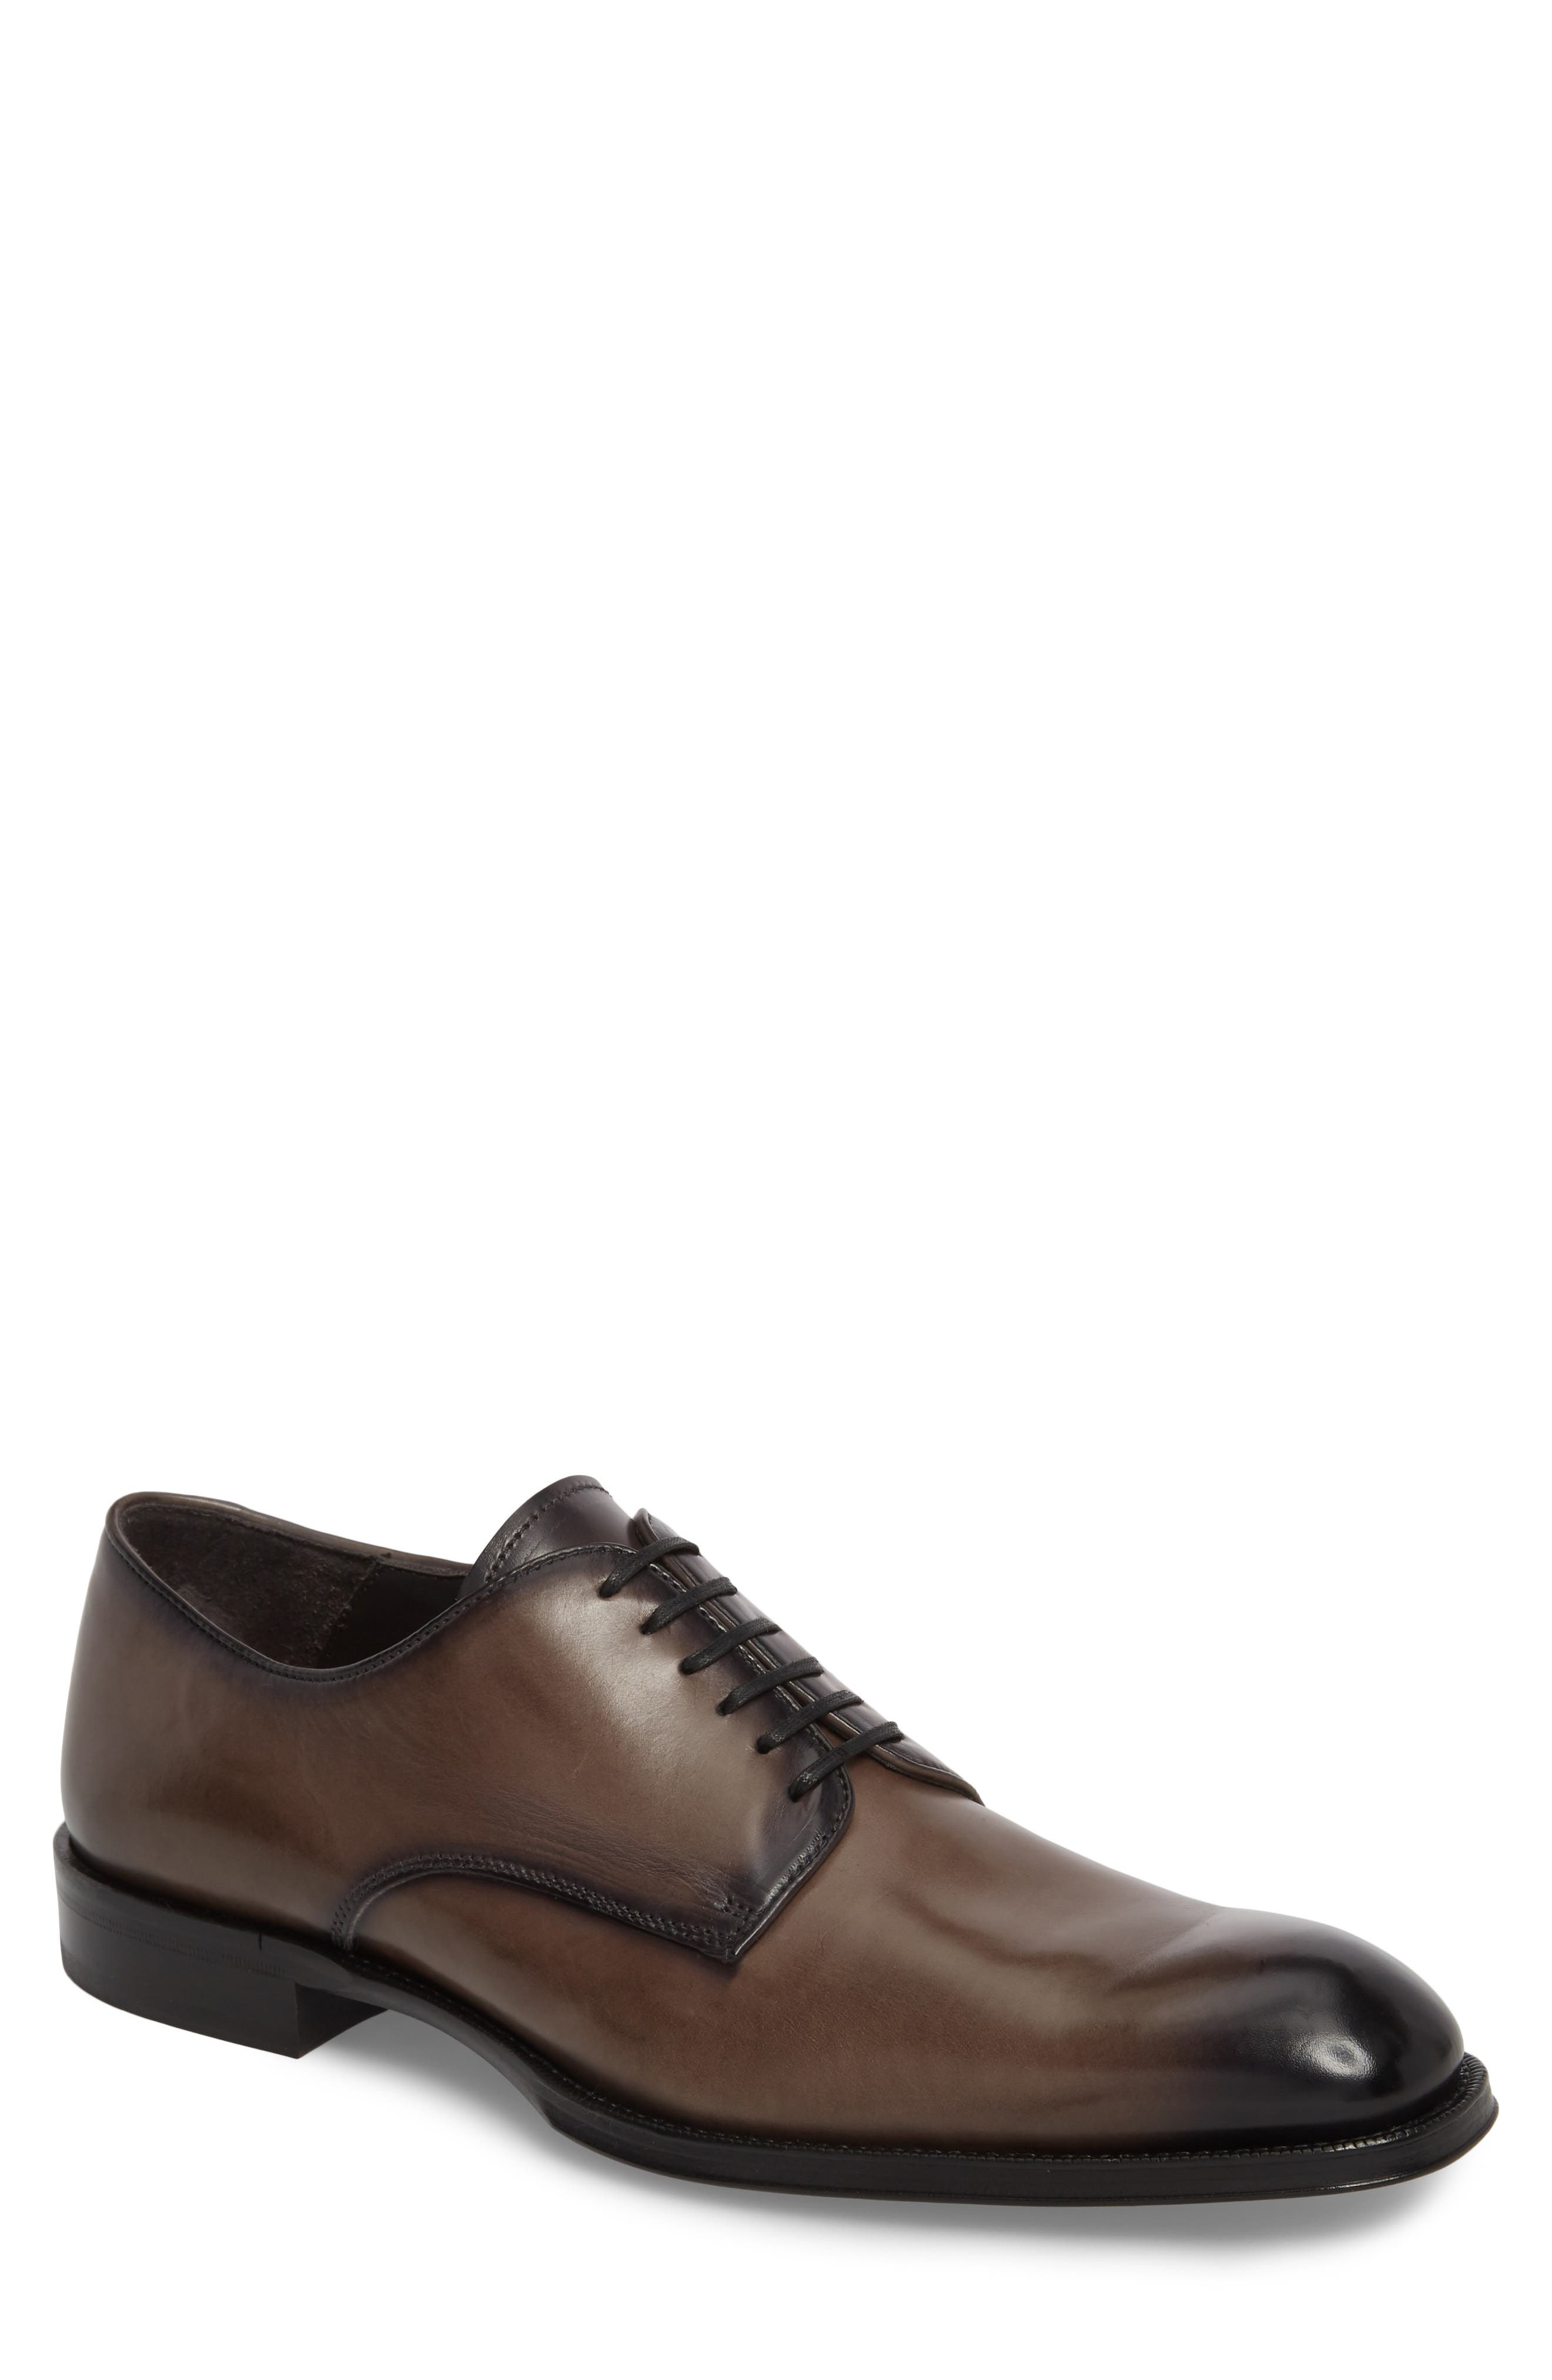 Alternate Image 1 Selected - To Boot New York Academy Plain Toe Derby (Men)